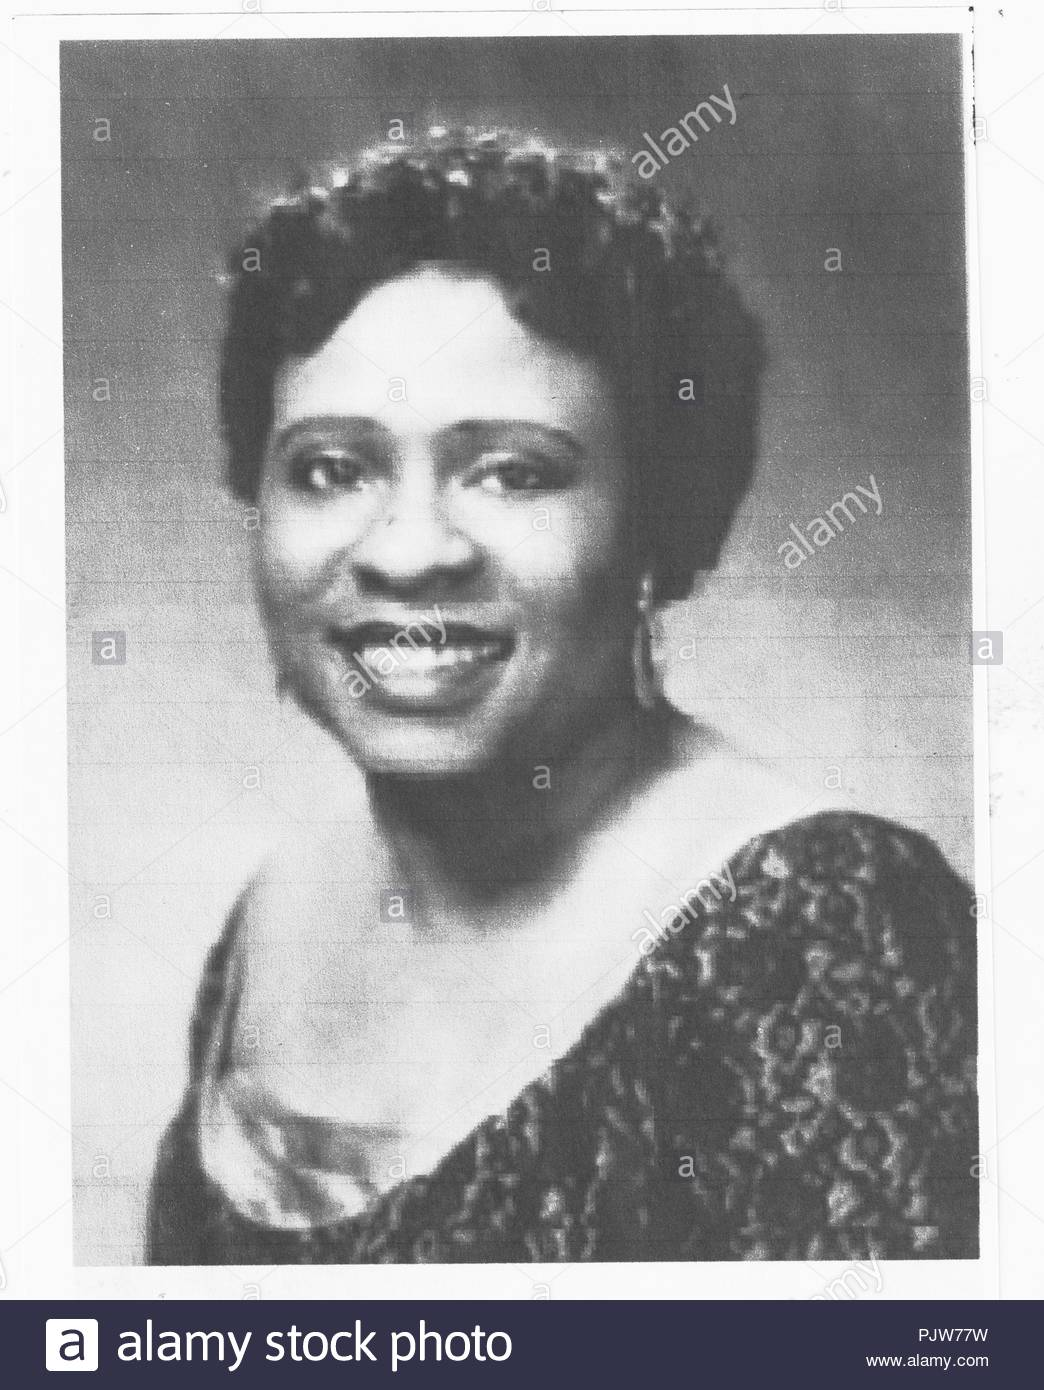 Fannie Mae Duncan Was An African American Entrepreneur Philanthropist And Community Activist In Colorado Springs She Is Best Known As The Proprietor Of Cotton Club Early Integrated Jazz Named For Famous Harlem Inducted Into Womens Hall Fame Recognized Her Courageous Stand Fostered Peaceful Integration